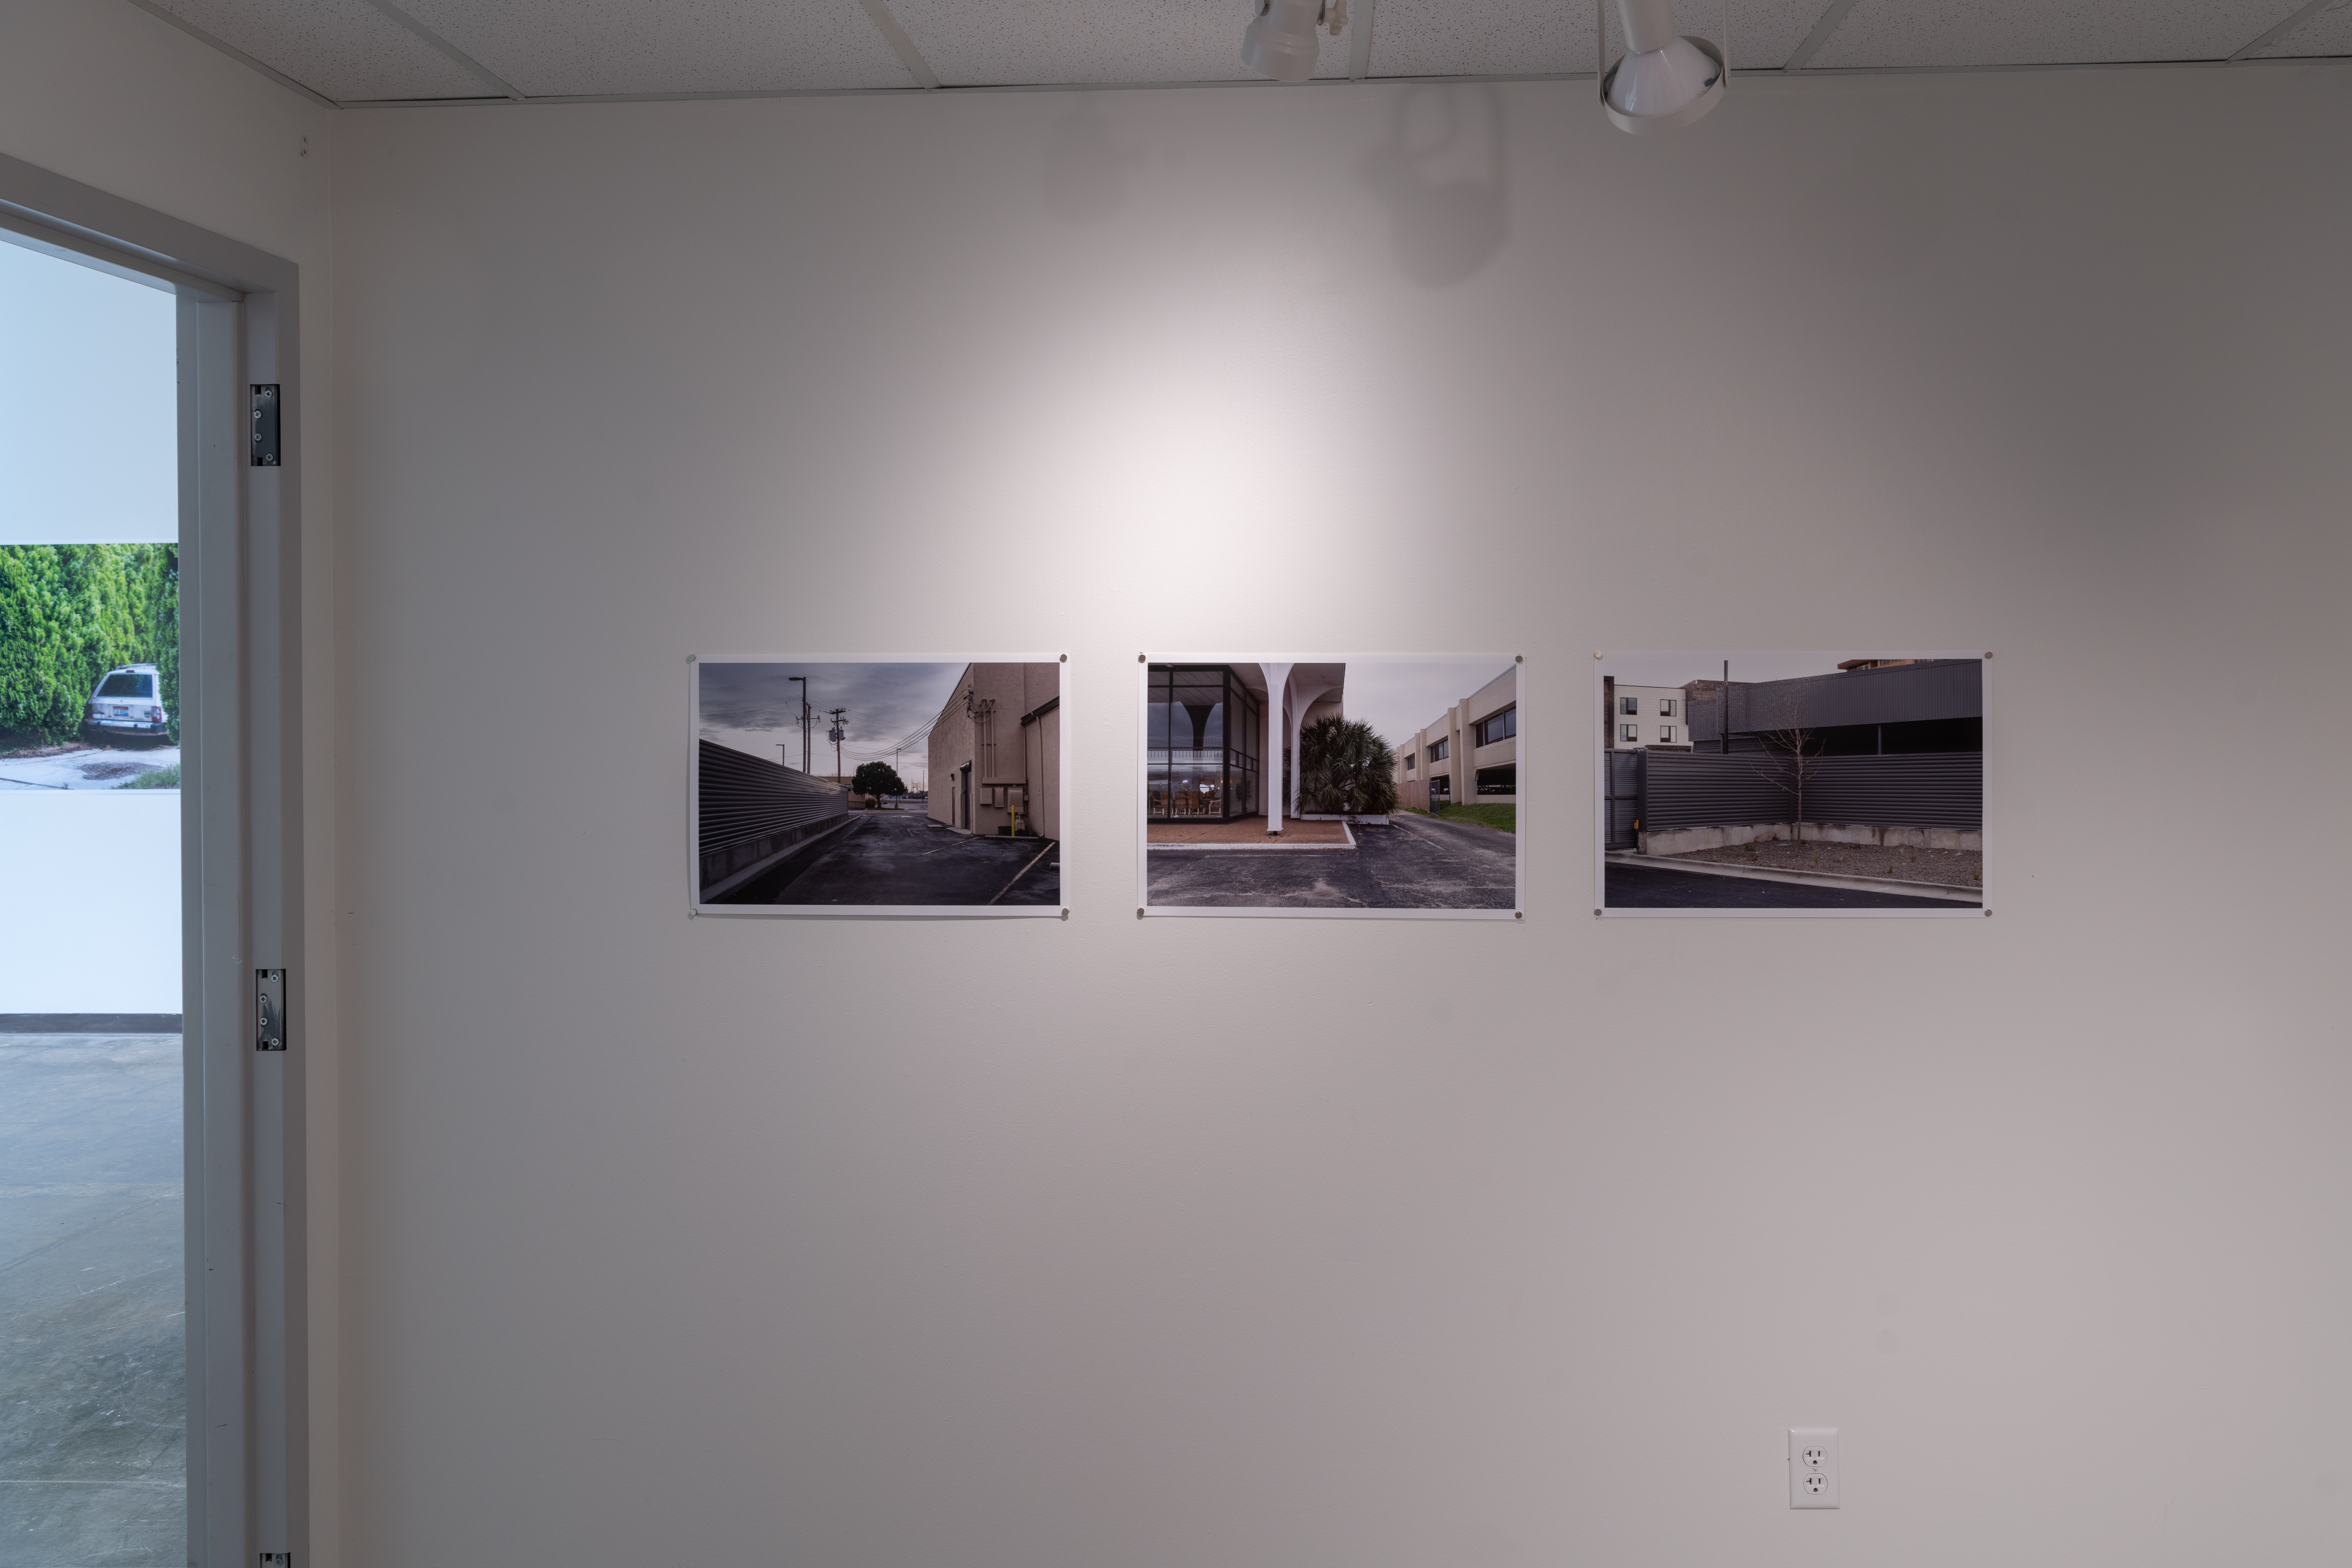 Gallery installation of Untitled 14 small prints showing 3 photos hung in a horizontal line.